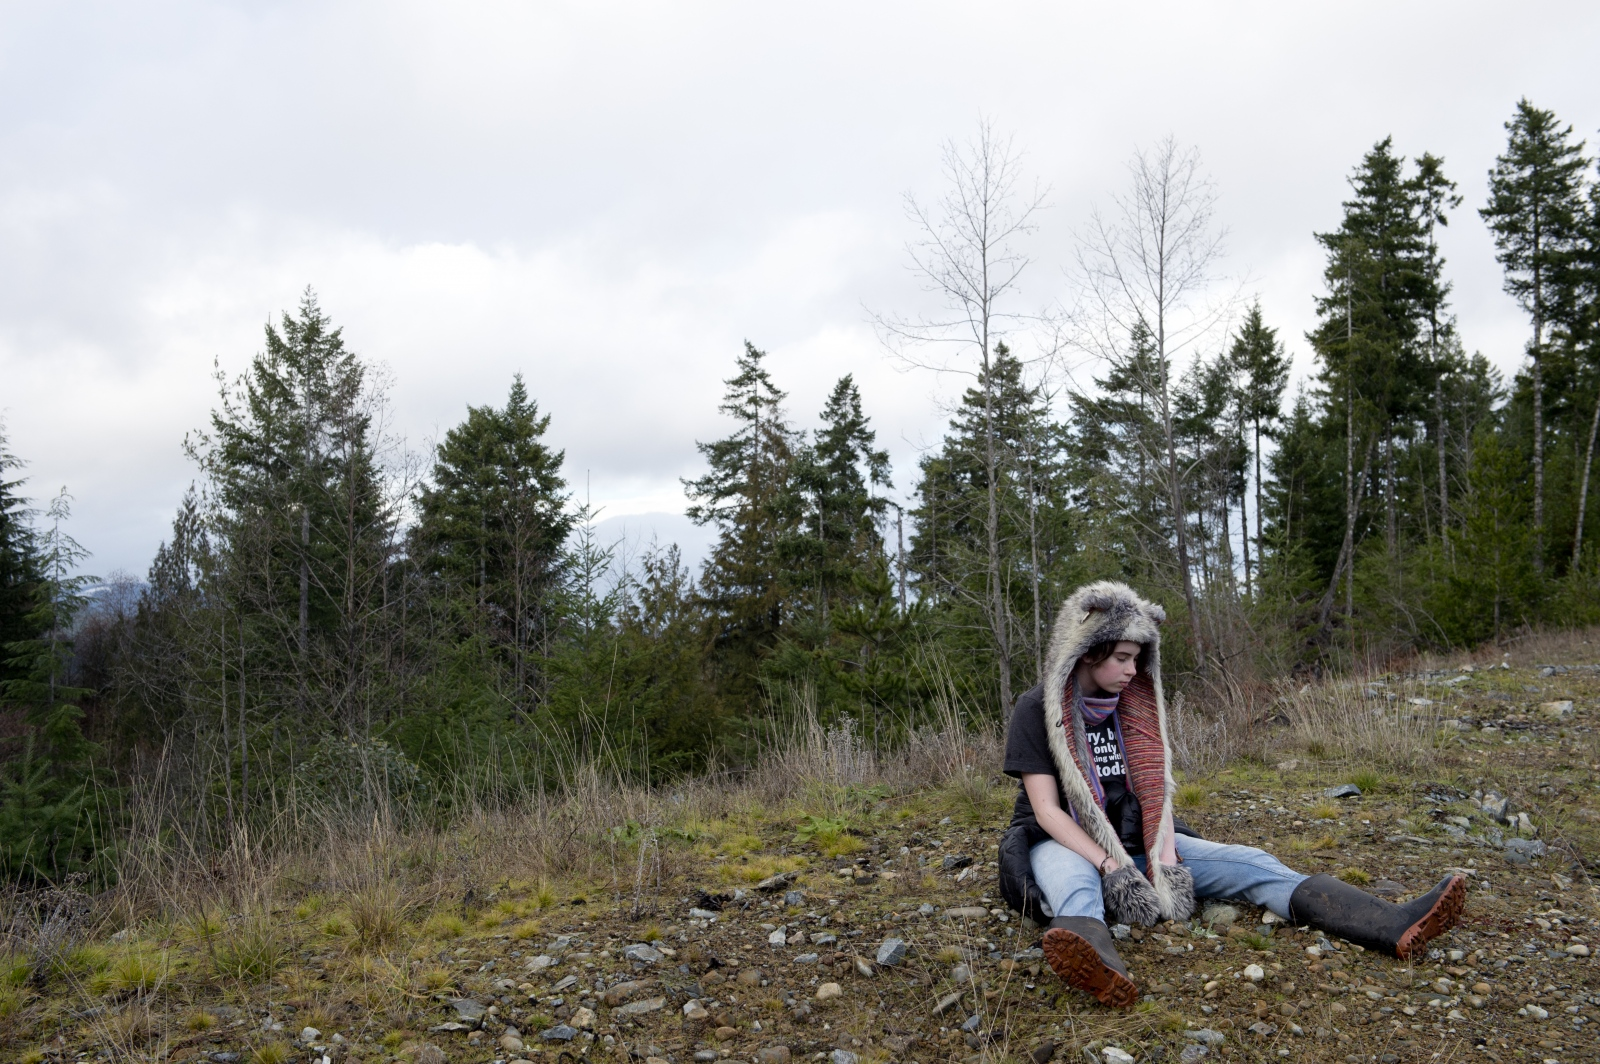 Claire Keen, 15, of Shawnigan Lake, rests during a public tour around the dump site on Sunday, Dec. 20, 2015.